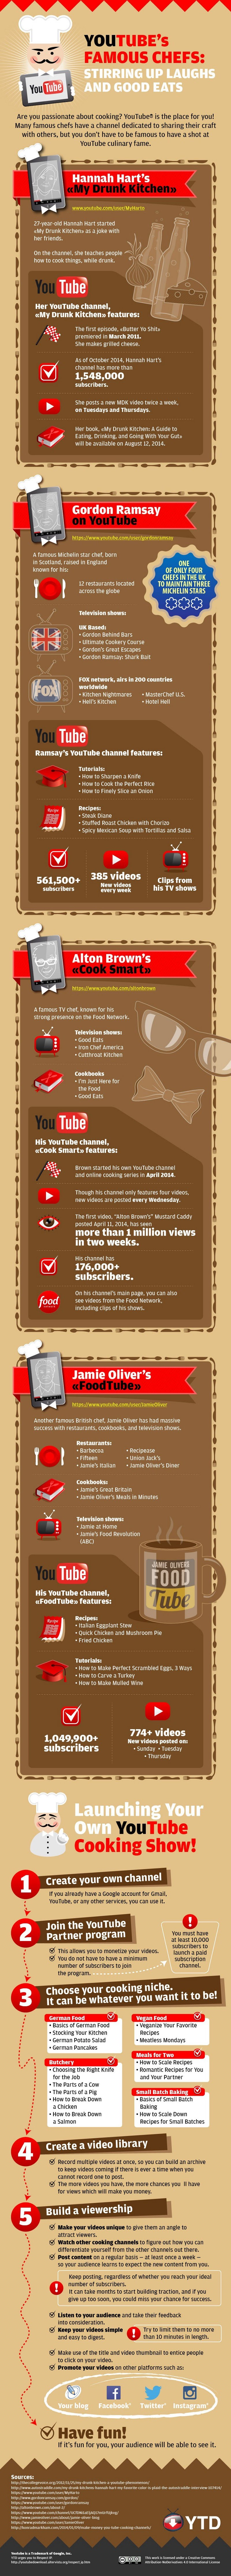 How To Start Your Own Cooking Channel on YouTube - #Infographic